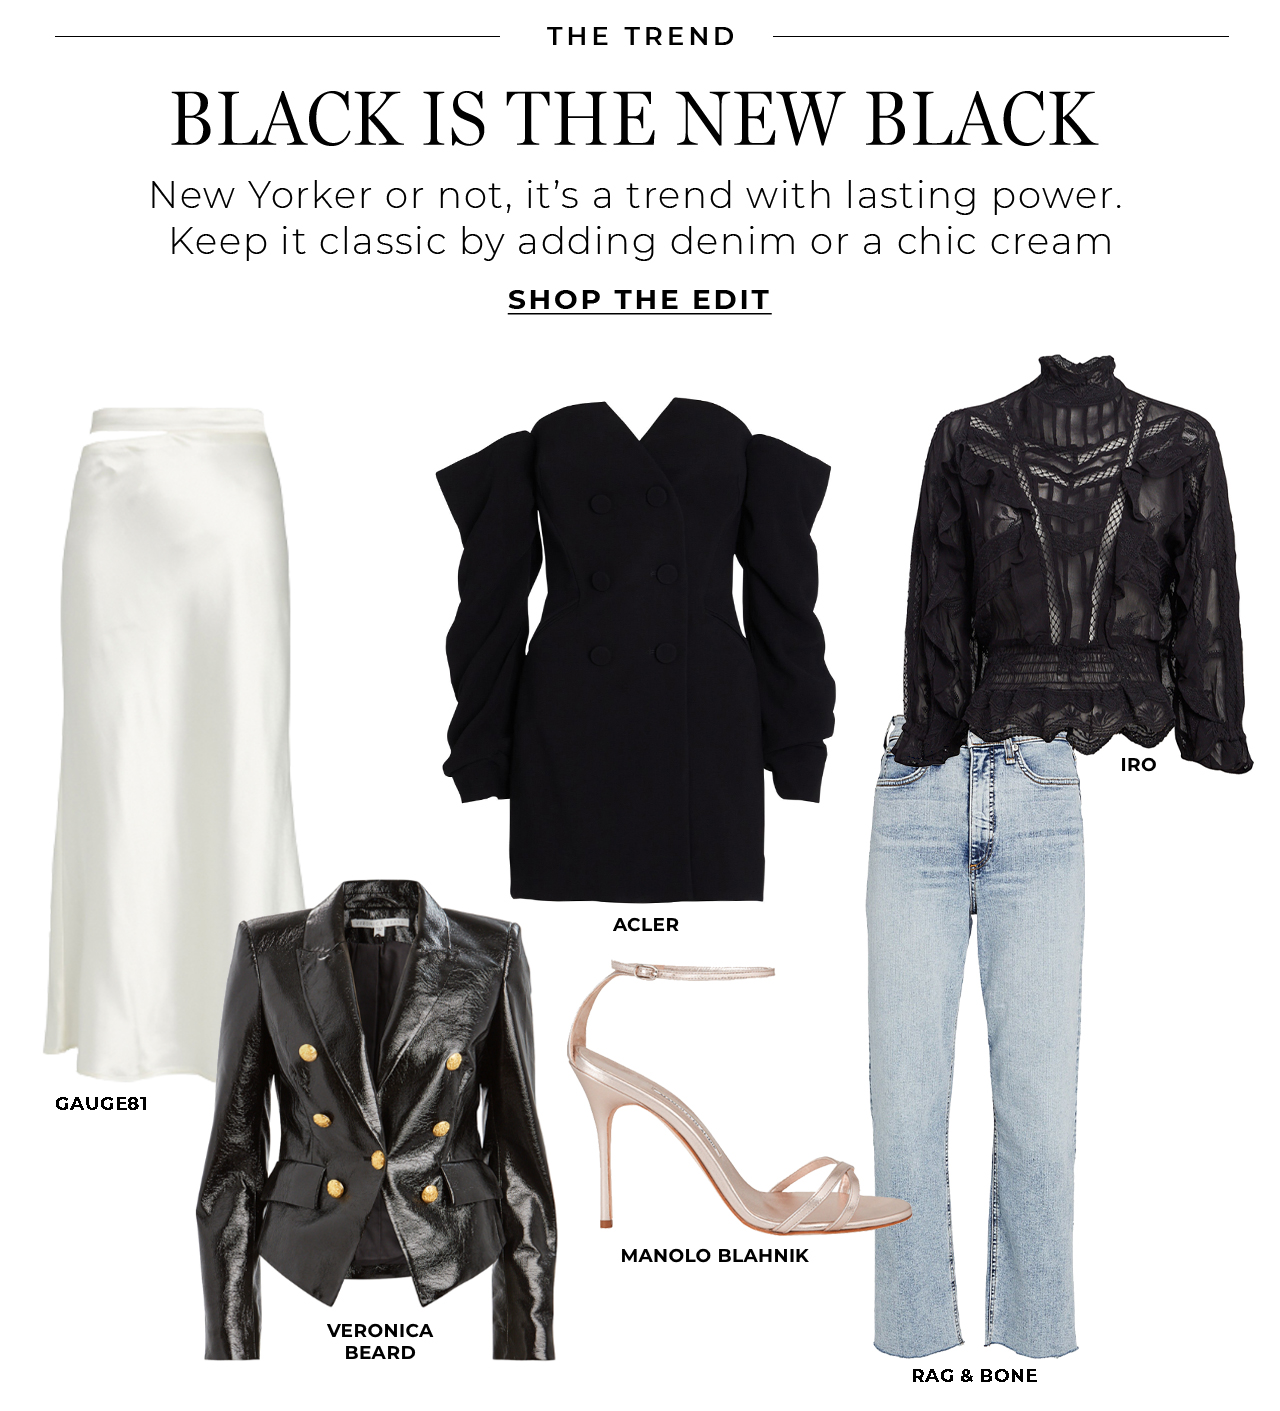 Black is the new black. Keep it classic with denim or a chic cream